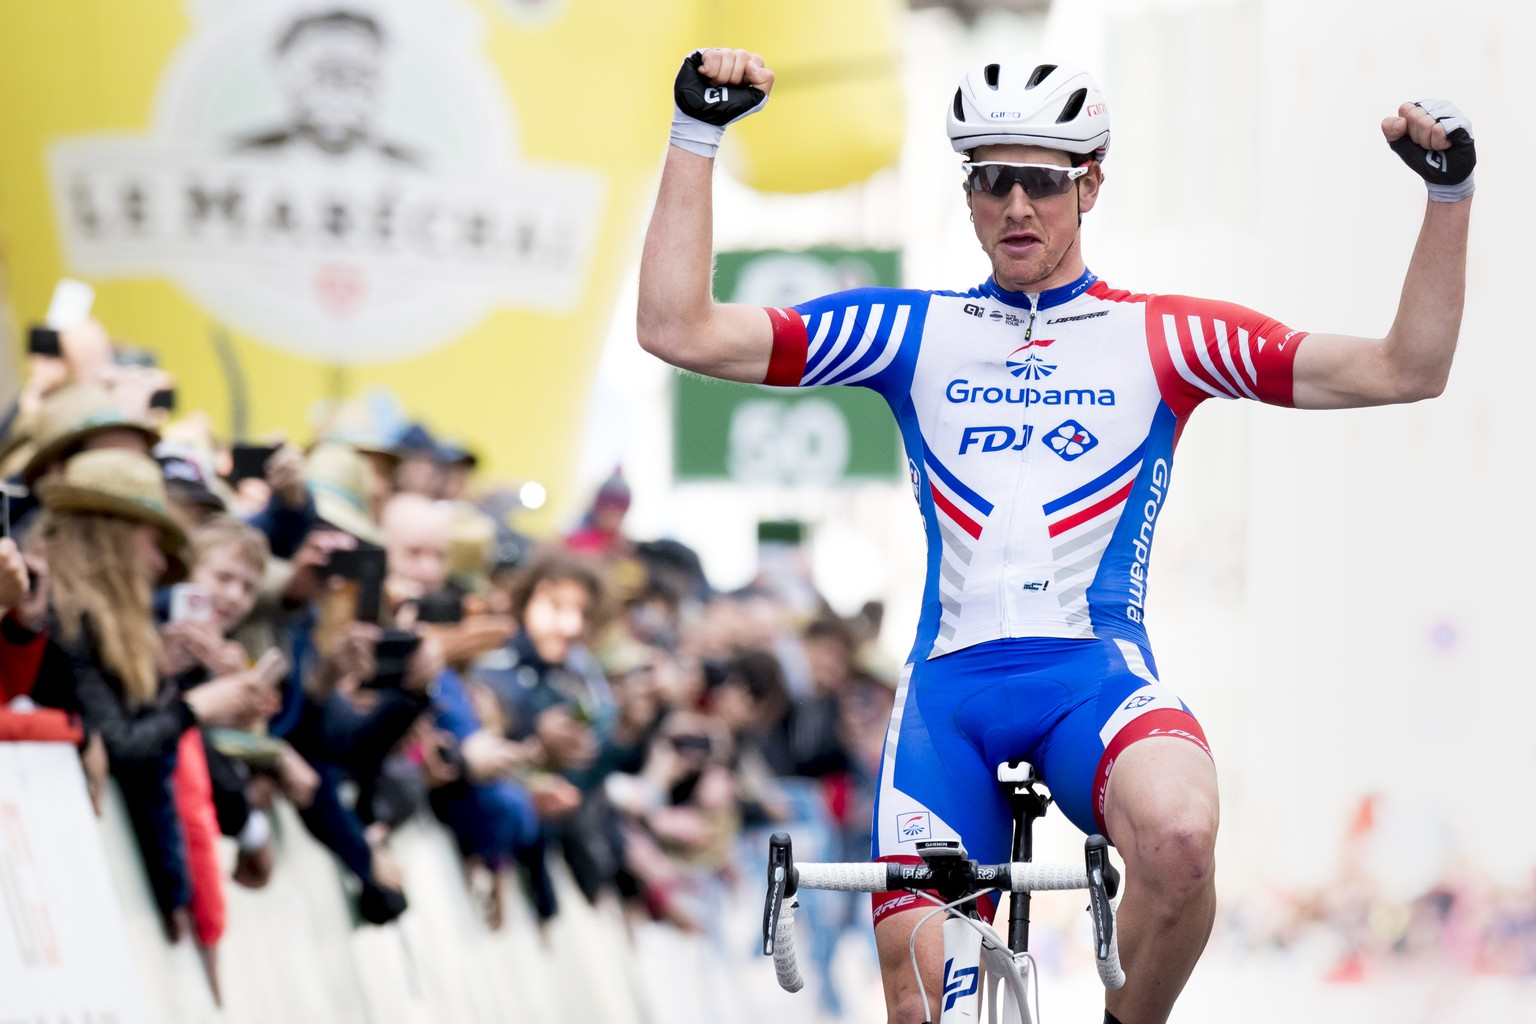 Stefan Kueng from Switzerland of team Groupama-FDJ raises his arms after crossing the finish line to win the second stage, a 174,4 km race between Le Locle and Morges at the 73th Tour de Romandie UCI ProTour cycling race in Morges, Switzerland, Thursday, May 2, 2019. (KEYSTONE/Laurent Gillieron)